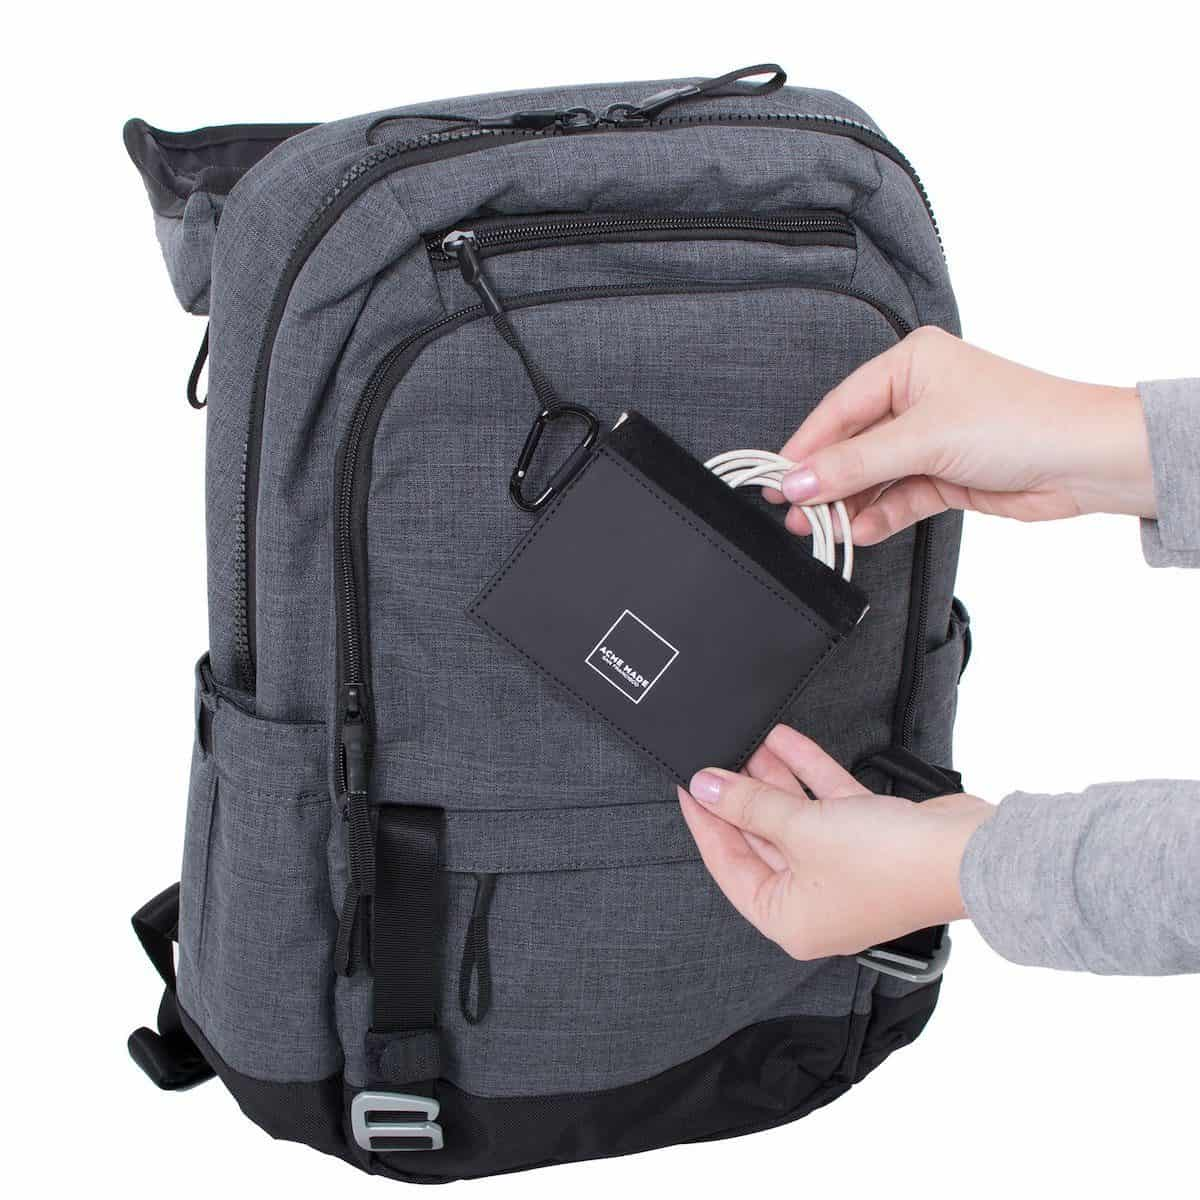 dailymom parent portal acme backpack 3 daily mom parent portal gifts for men